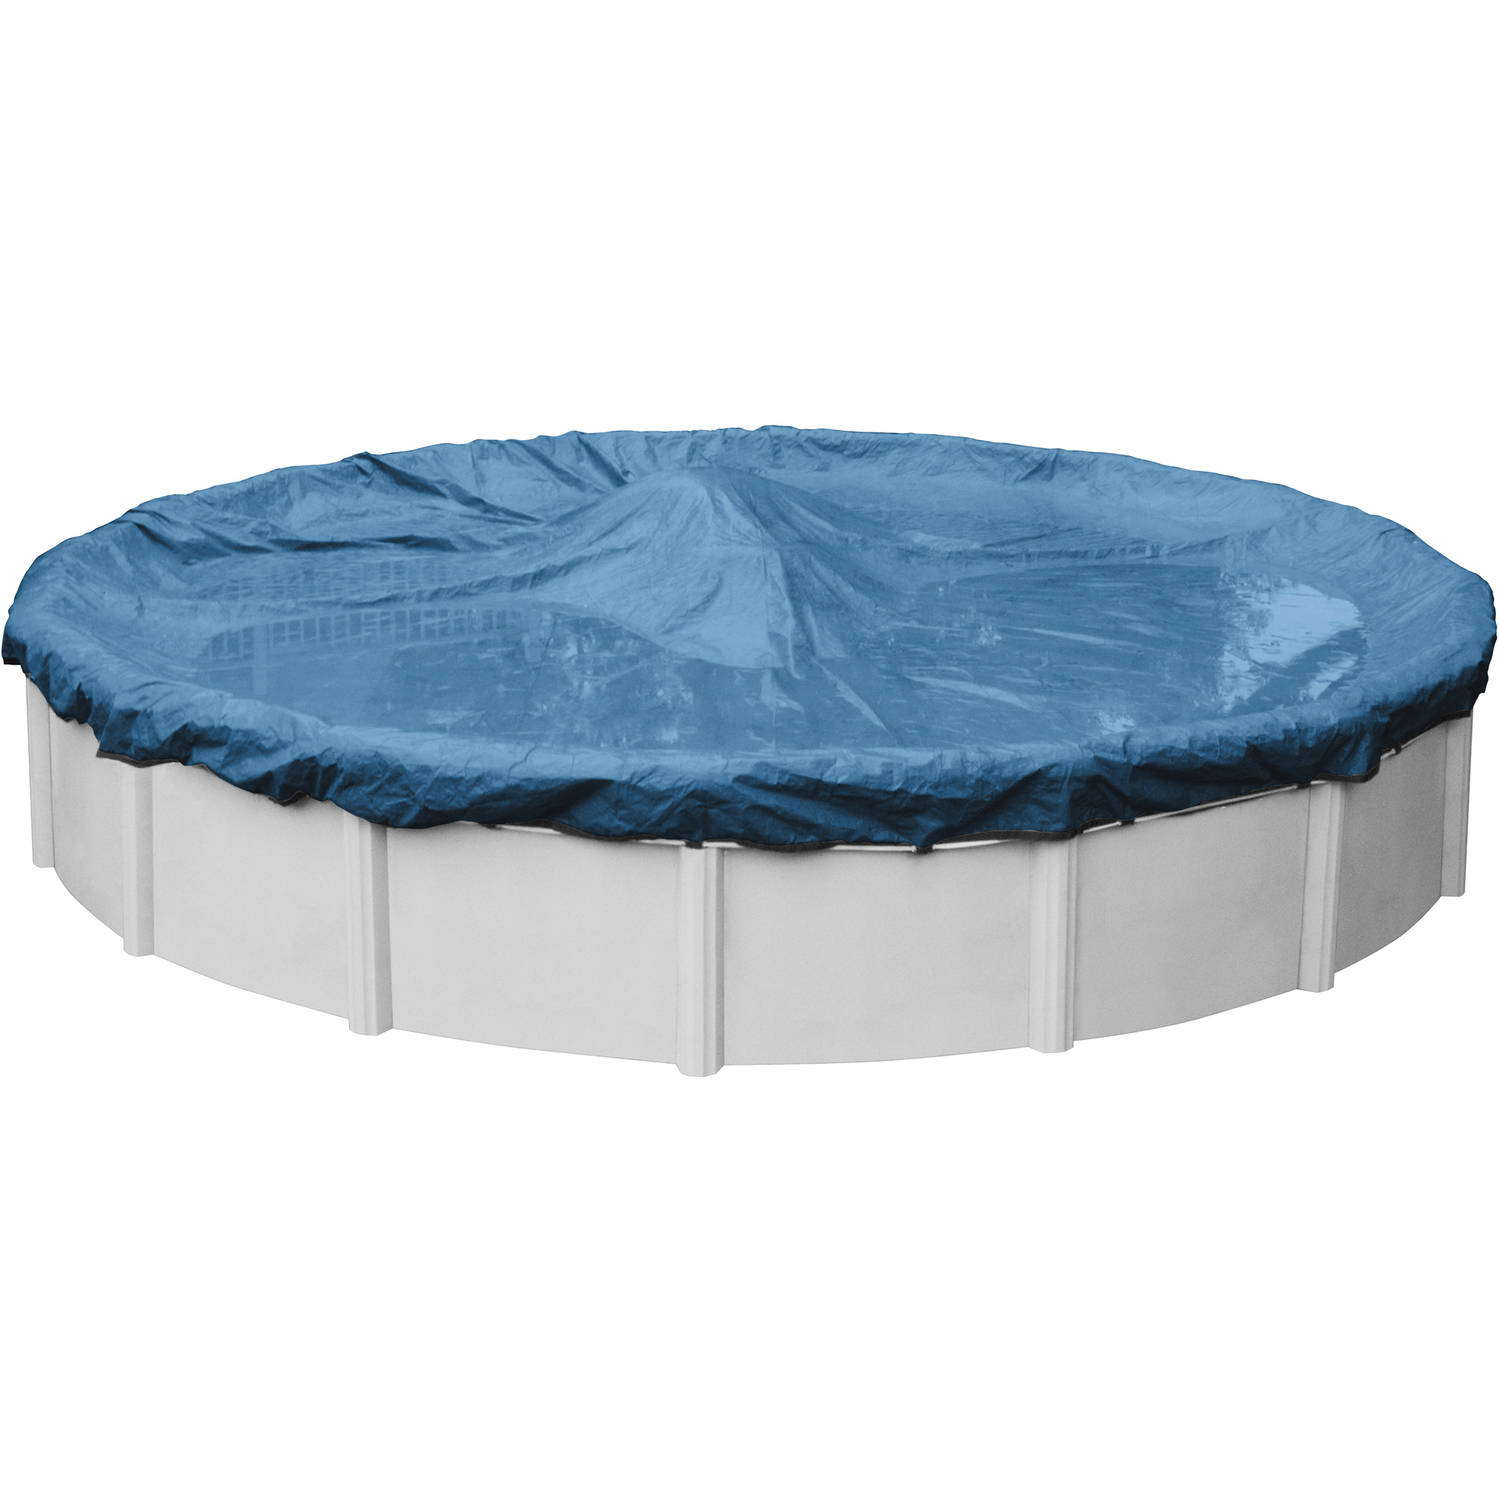 Robelle 10-Year Heavy-Duty Round Winter Pool Cover